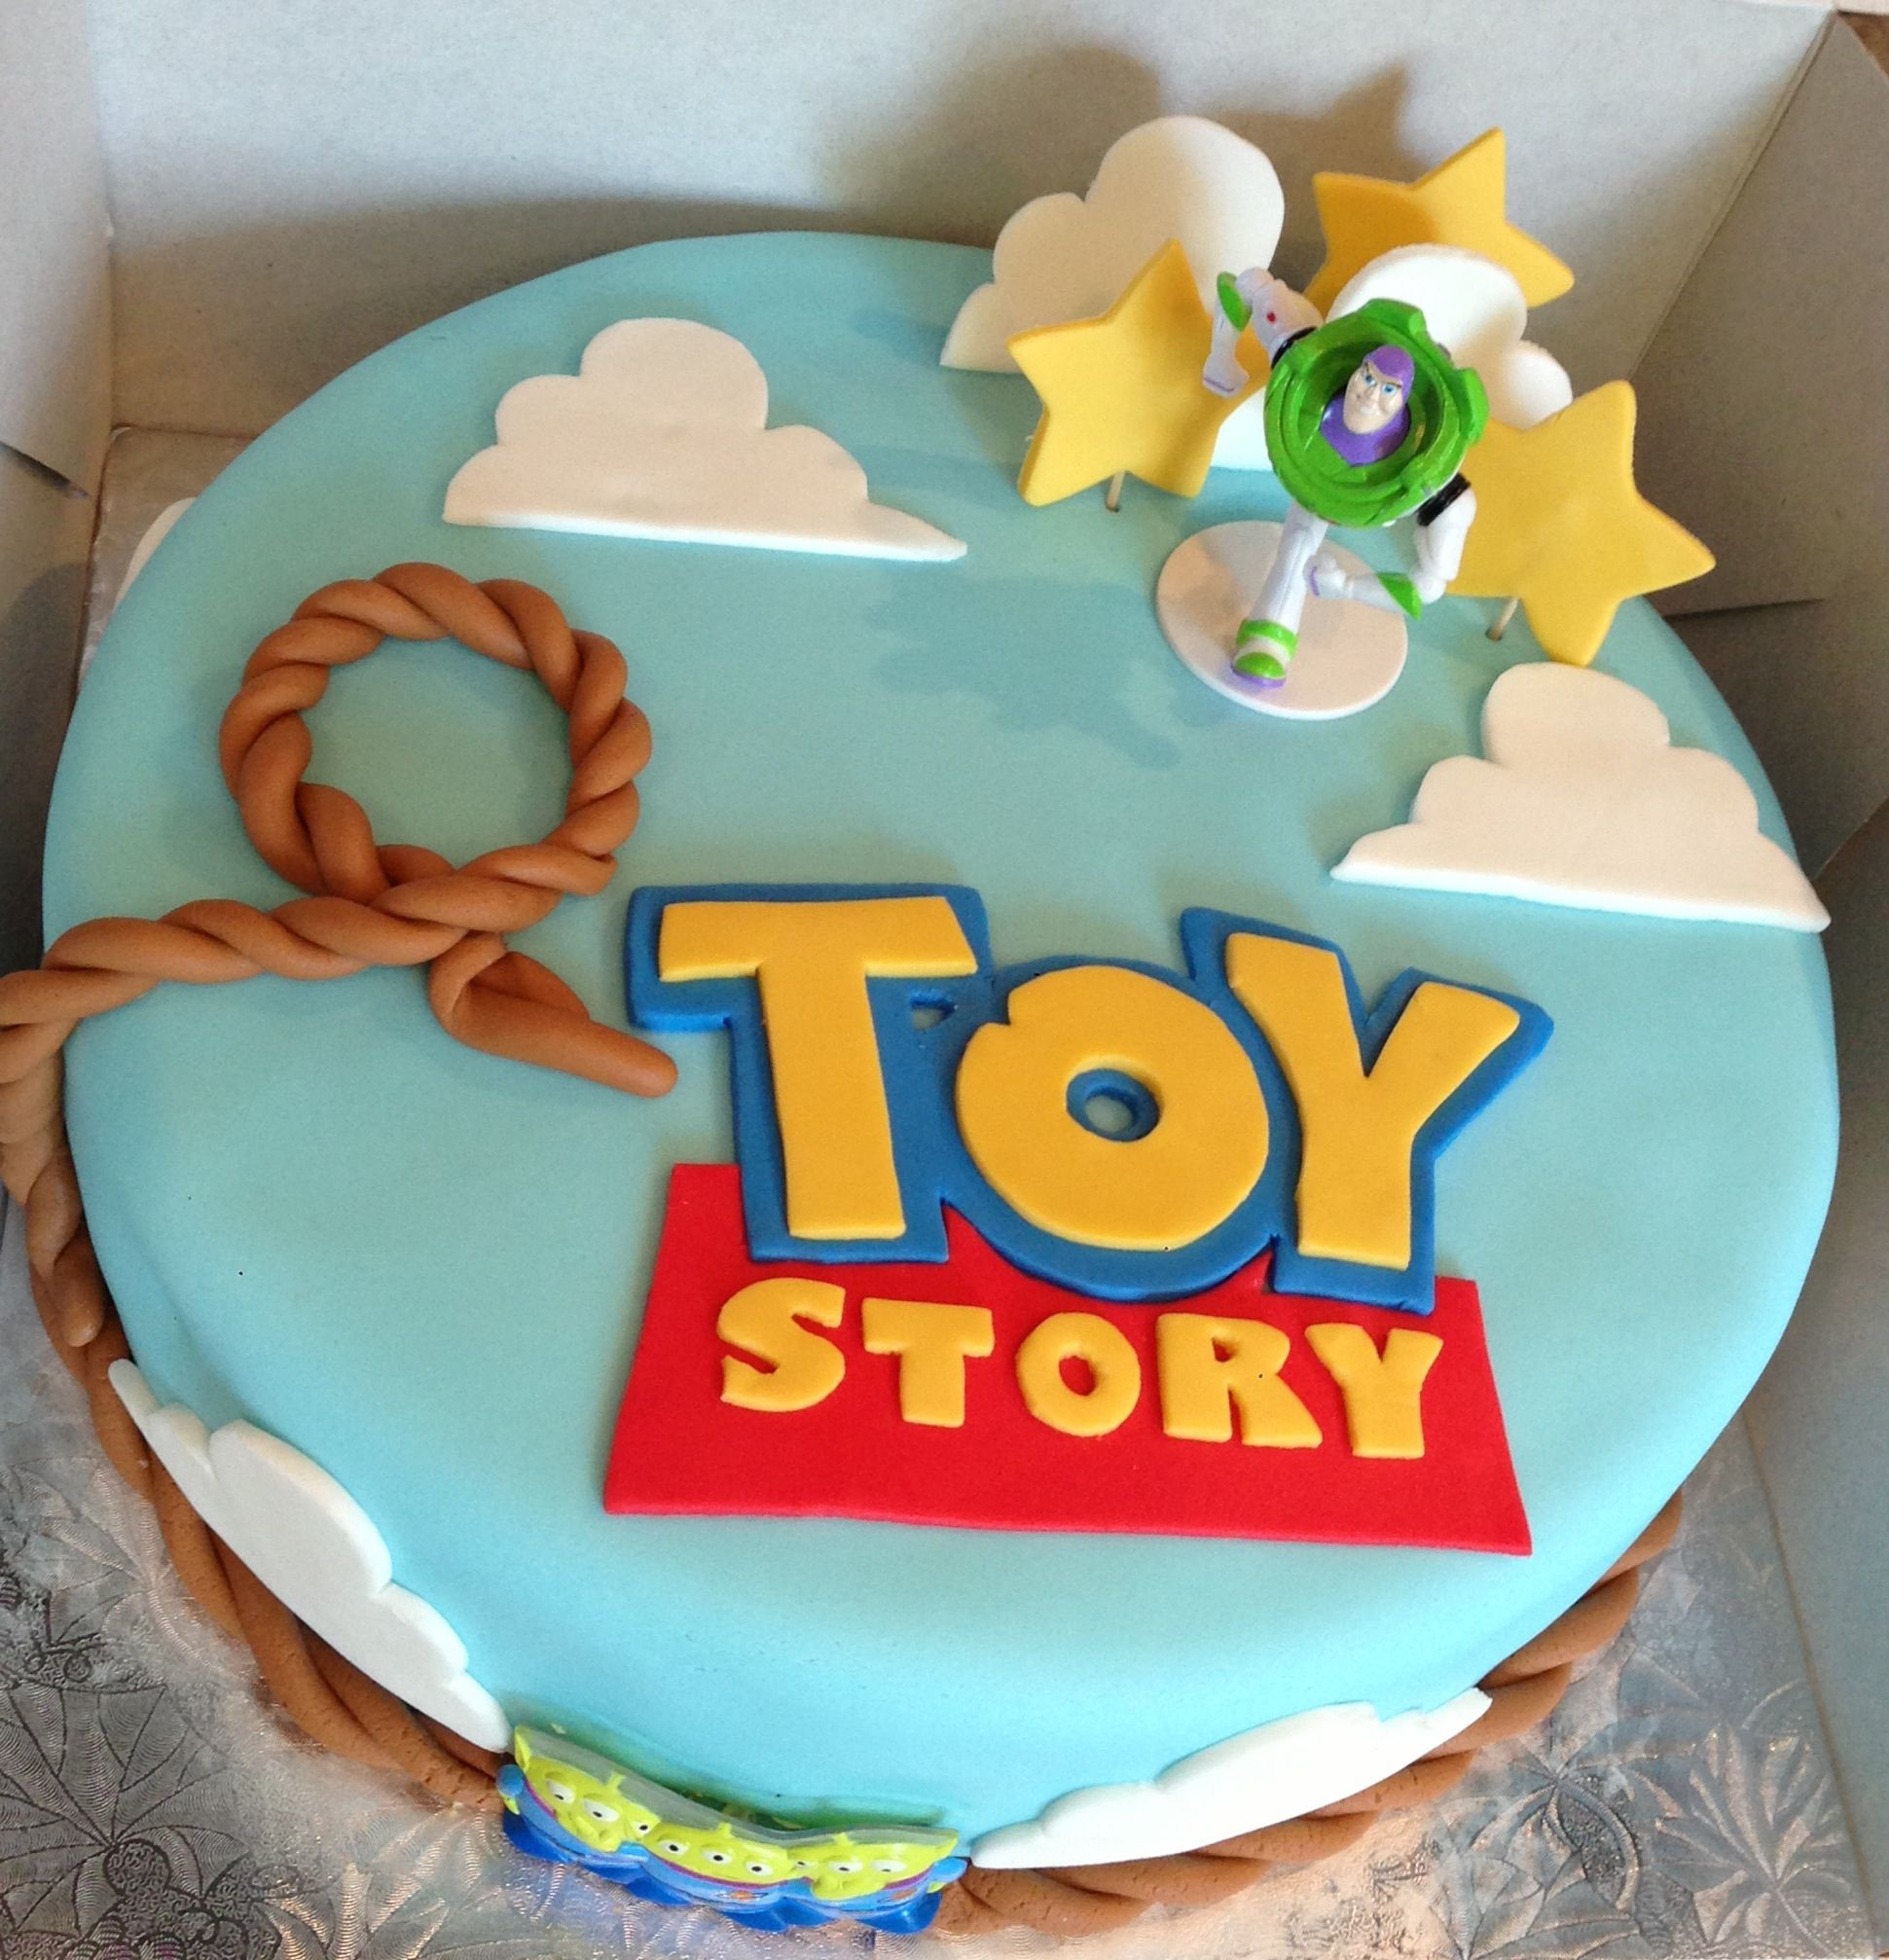 Pin by Angie Kent on Toy Story Cake Pinterest Toy story cakes